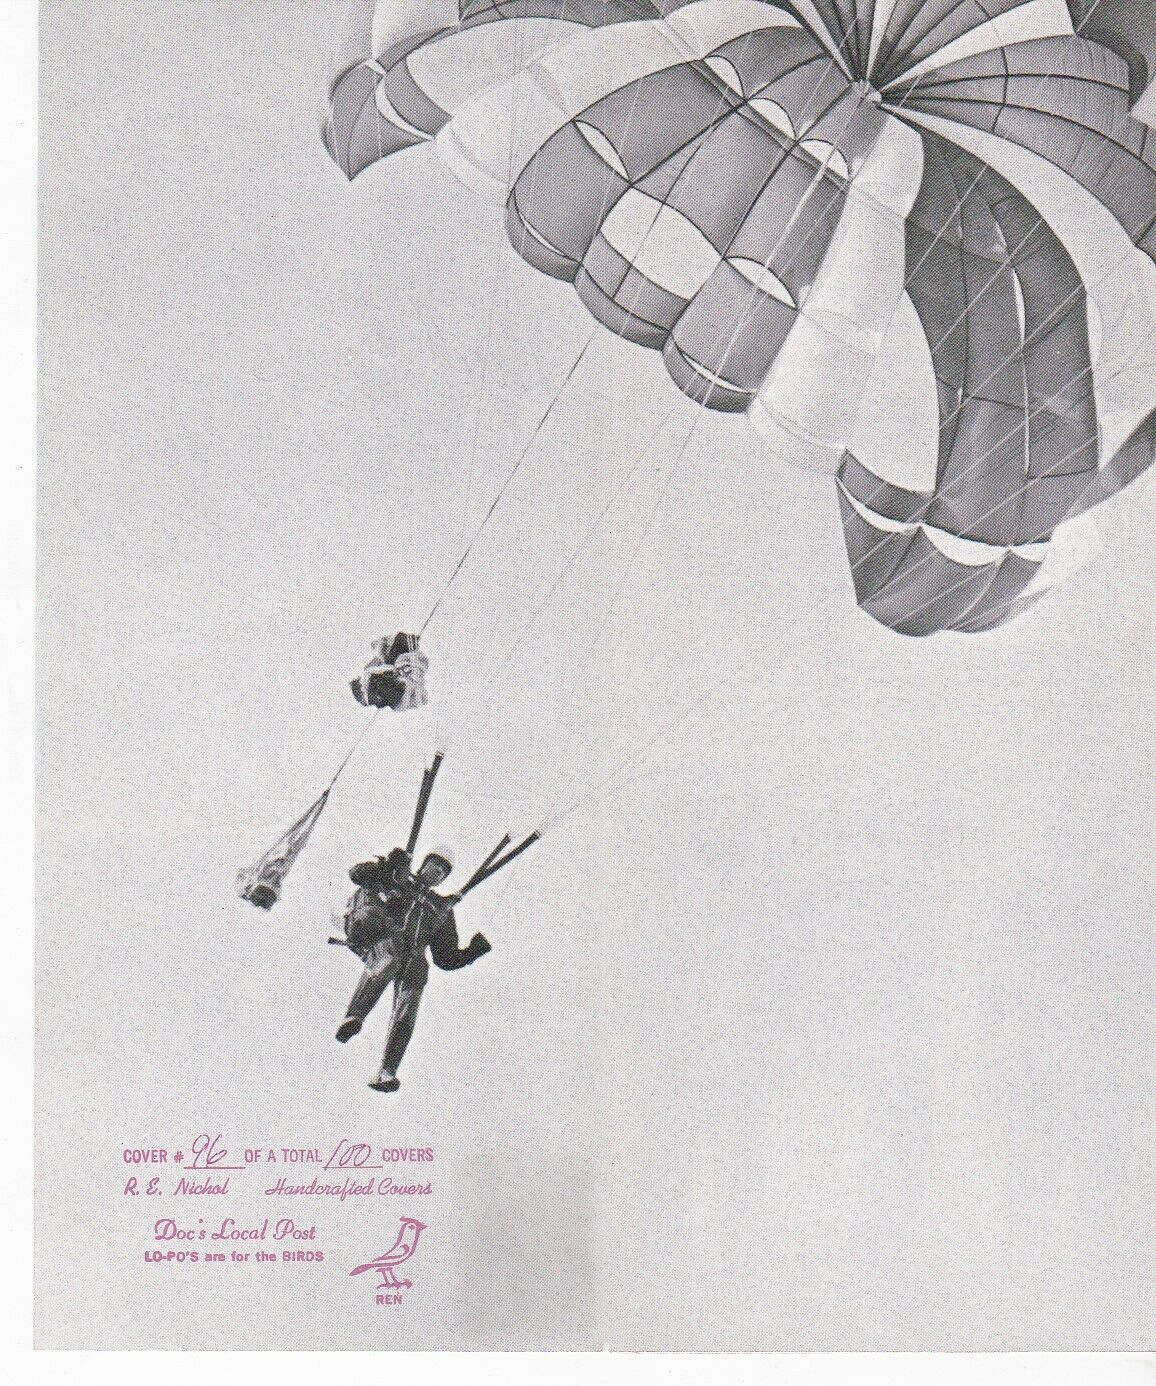 7th ARMY PARACHUTE TEAM PARACHUTE MAIL SIGNED BY 12 MEMBERS APO 1973 #96 OF 100